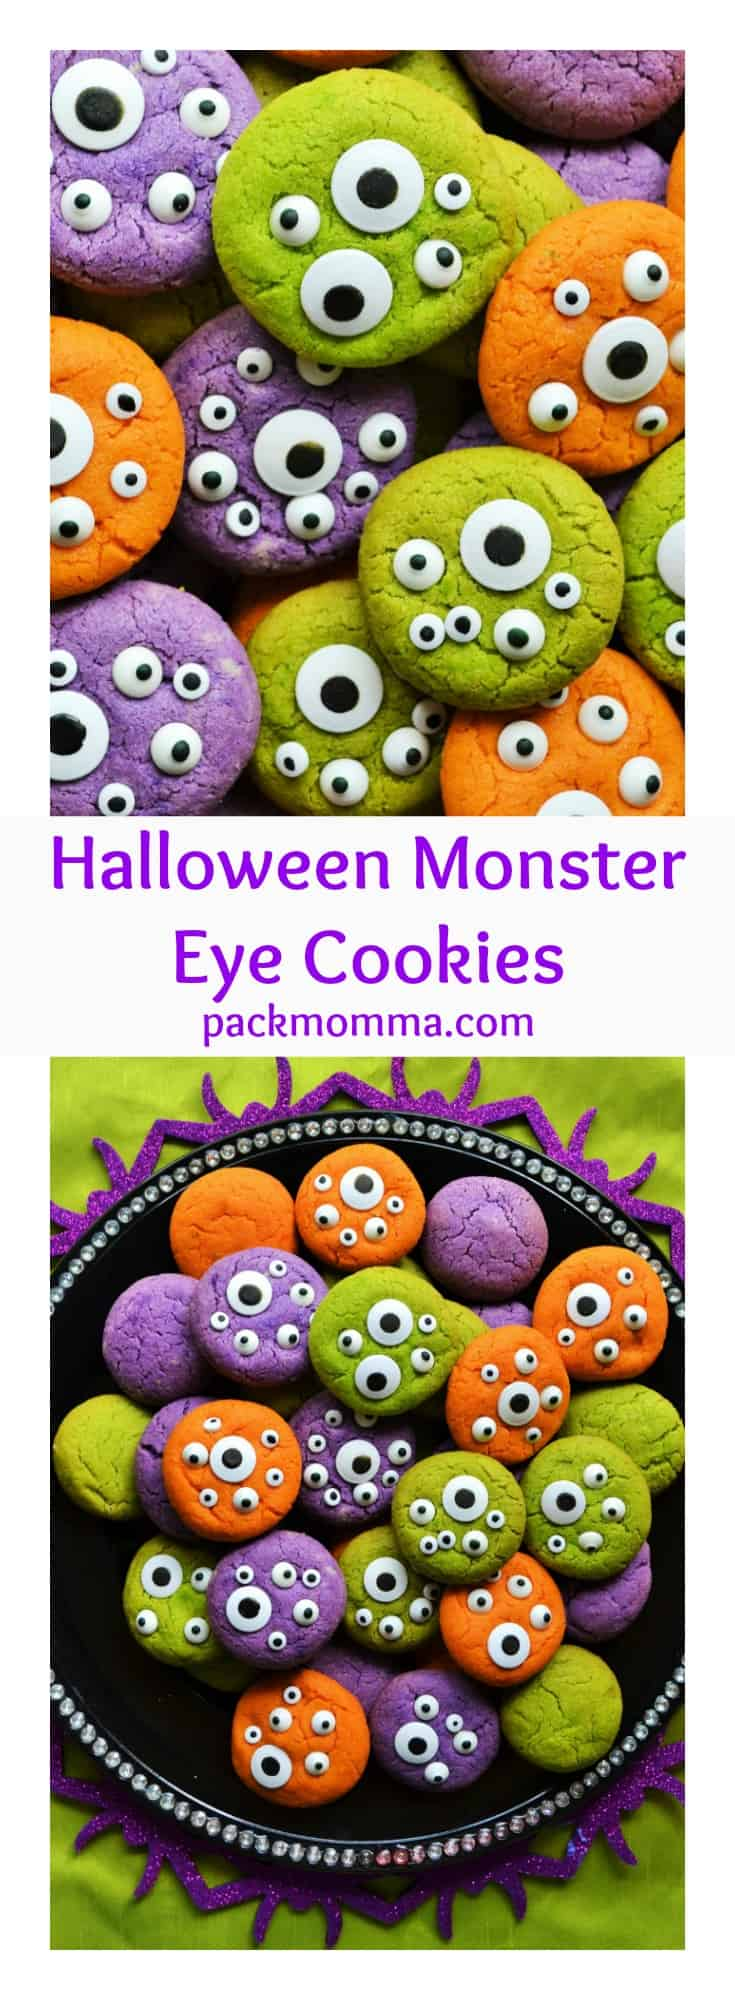 Halloween Monster Eye Cookies | Halloween Monster Eye Cookies are easy, festive and super fun to make! Soft vanilla cookies perfectly scary with candy eyeballs.. perfect for Halloween! | Pack Momma | www.packmomma.com #halloween #halloweenfood #halloweencookies #monstercookies #monstereyecookies